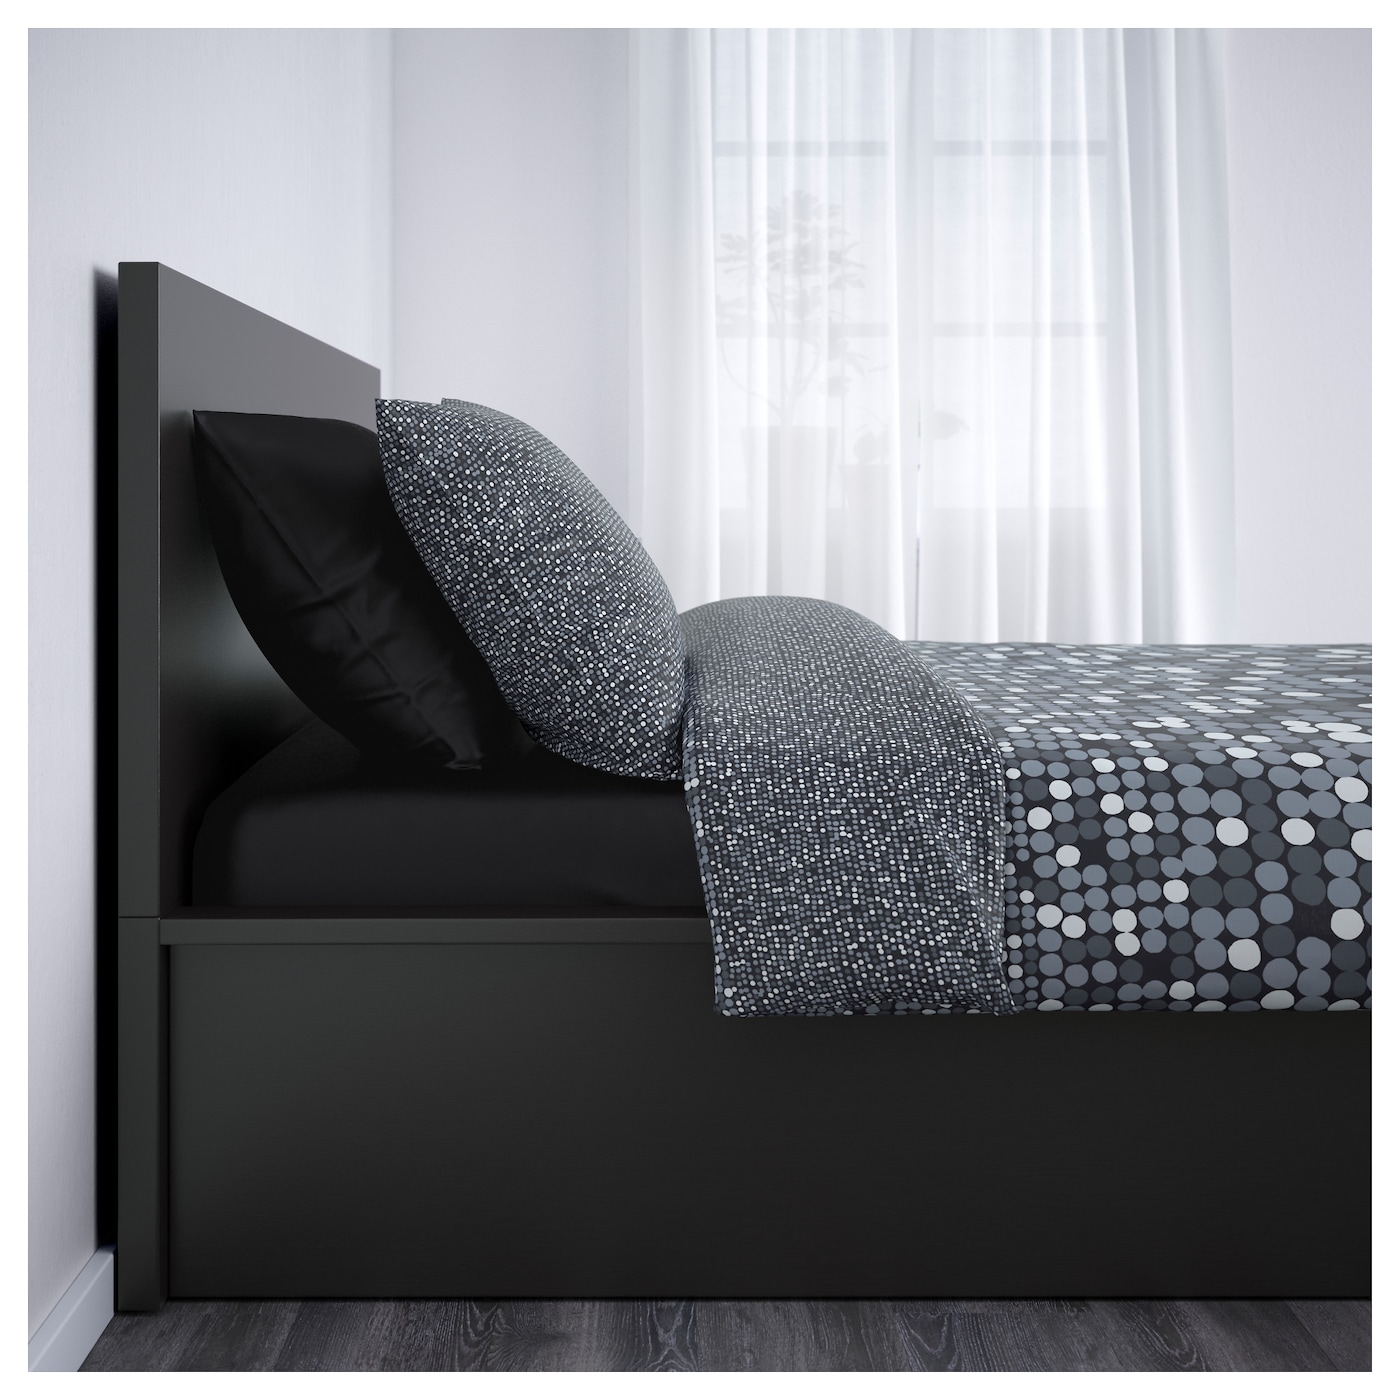 malm bedframe met opbergruimte zwartbruin 180x200 cm ikea. Black Bedroom Furniture Sets. Home Design Ideas